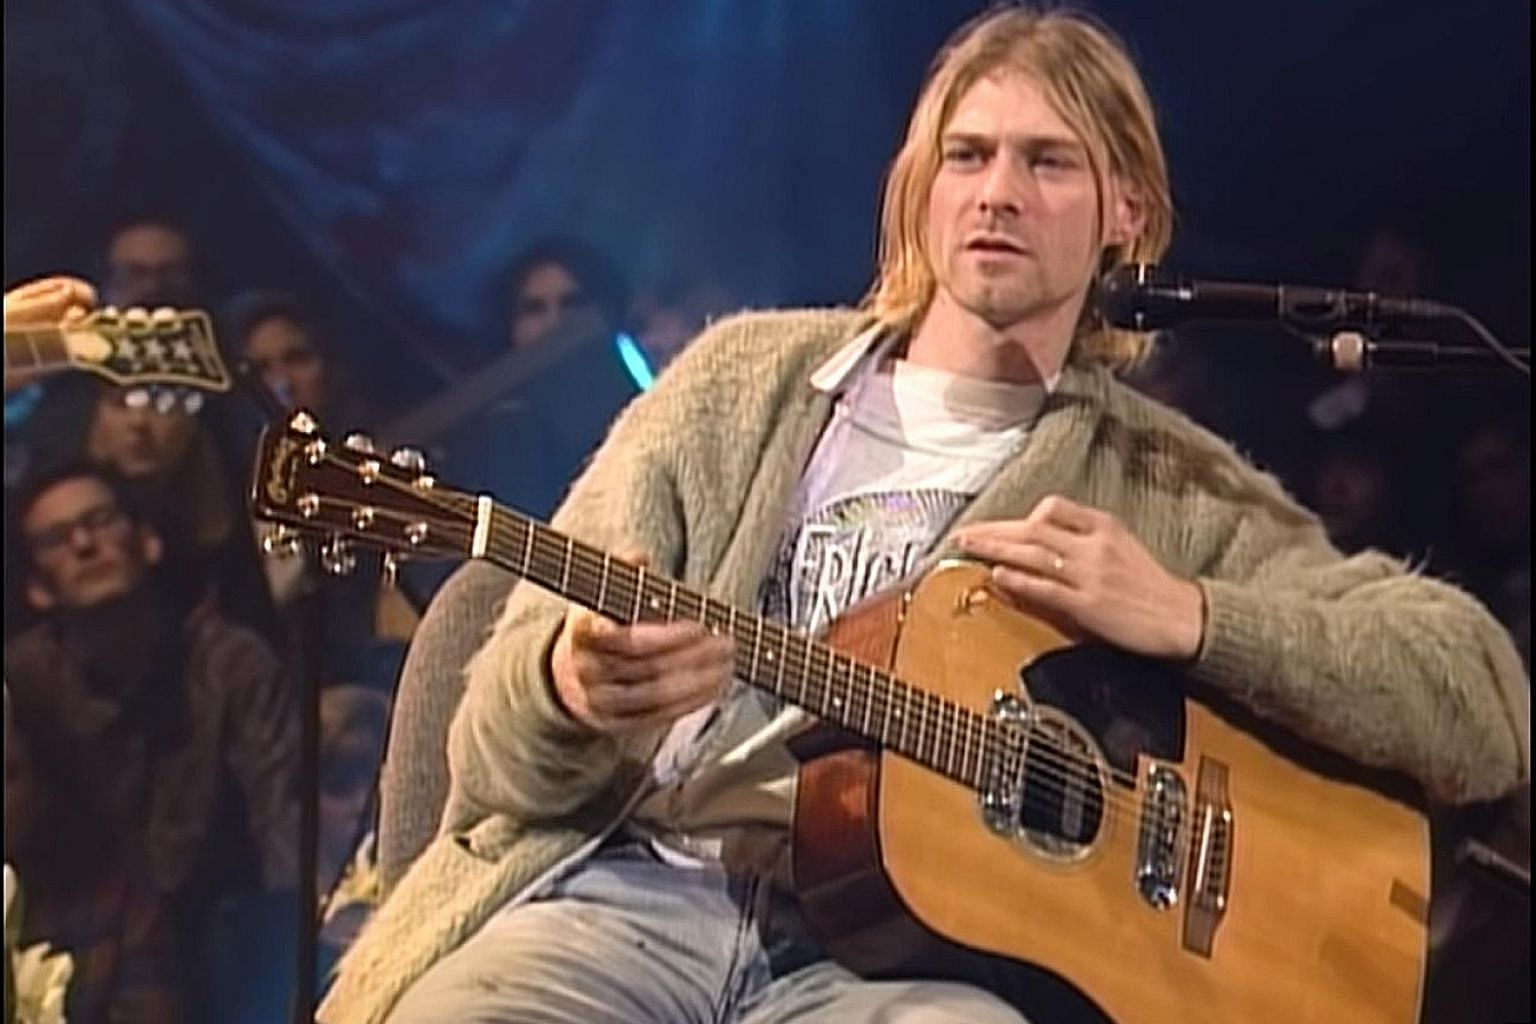 Kurt Cobain played the 1959 Martin D-18E guitar (above) at Nirvana's MTV Unplugged session in 1993, just five months before his death.